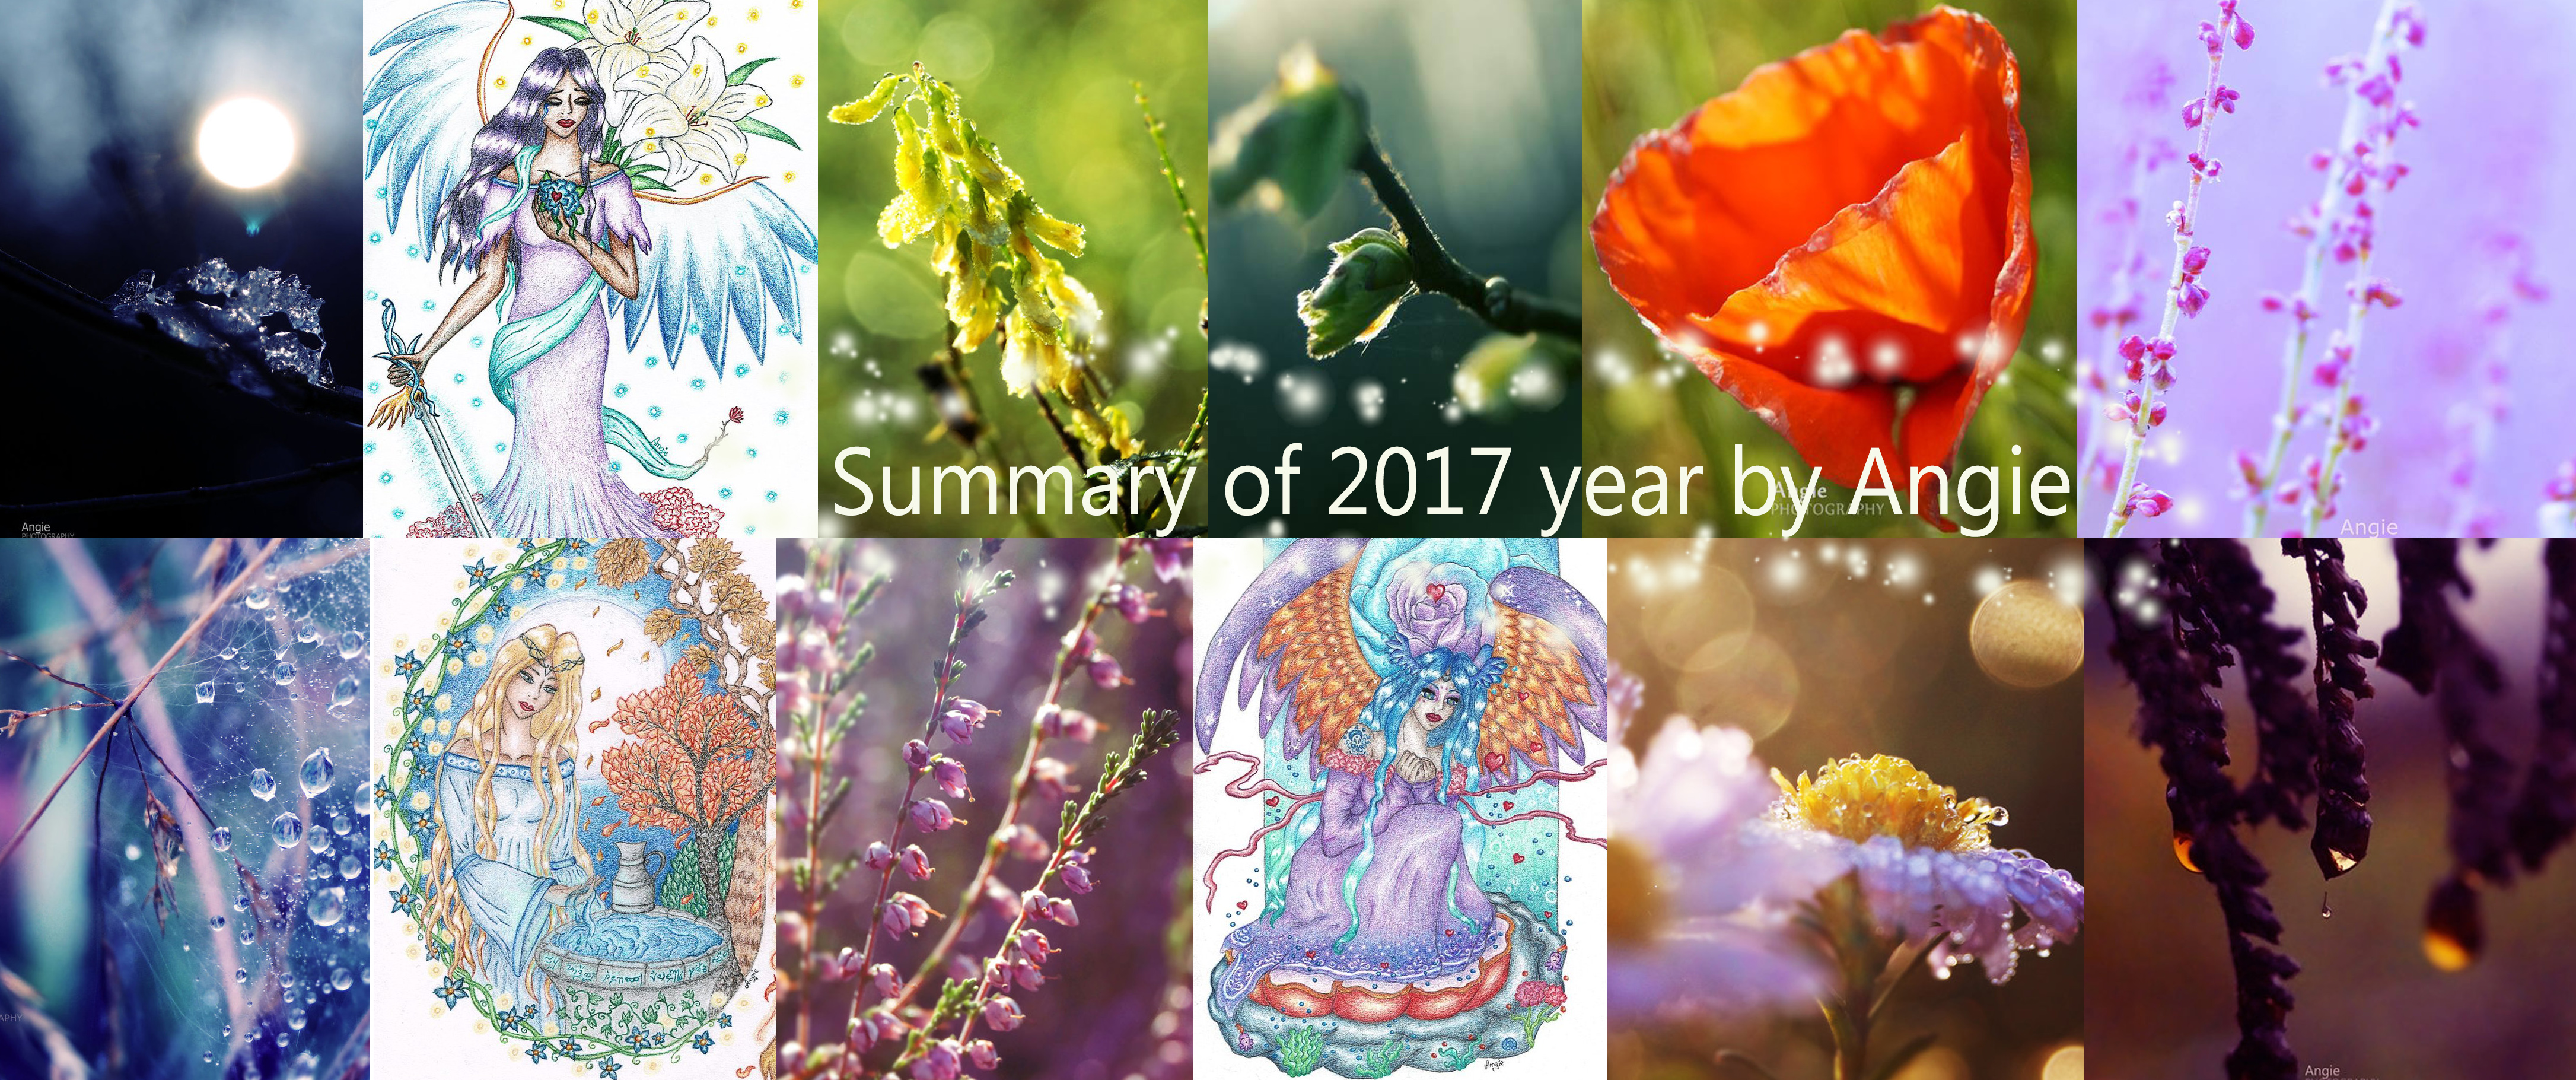 Summary of 2017 by Angie-AgnieszkaB